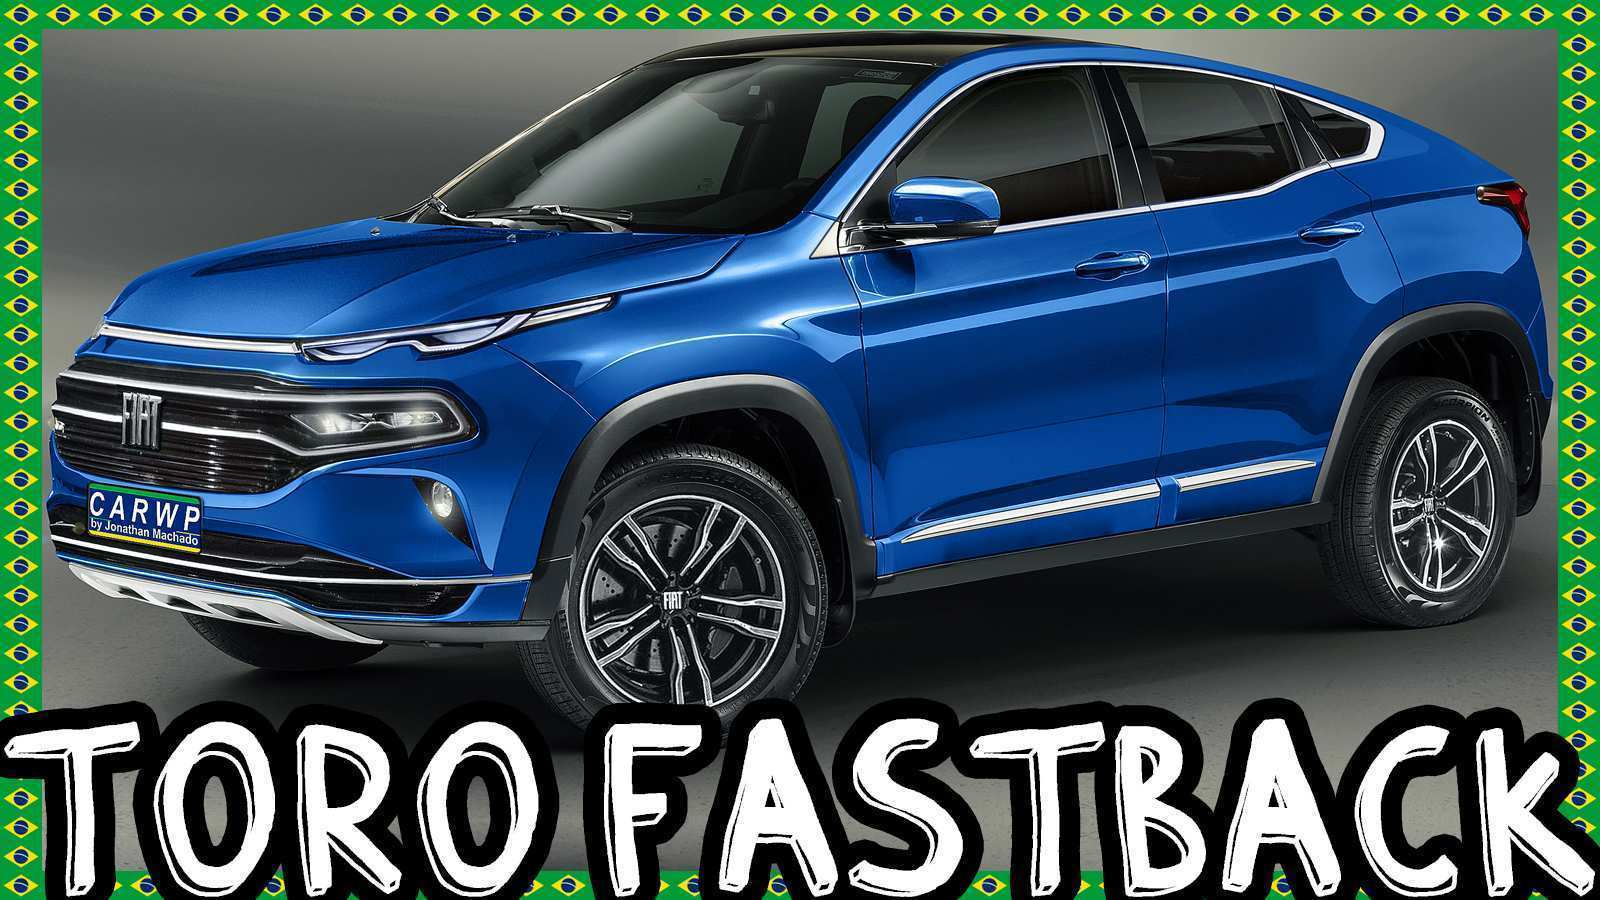 78 Best Review Fiat Toro 2020 Concept with Fiat Toro 2020